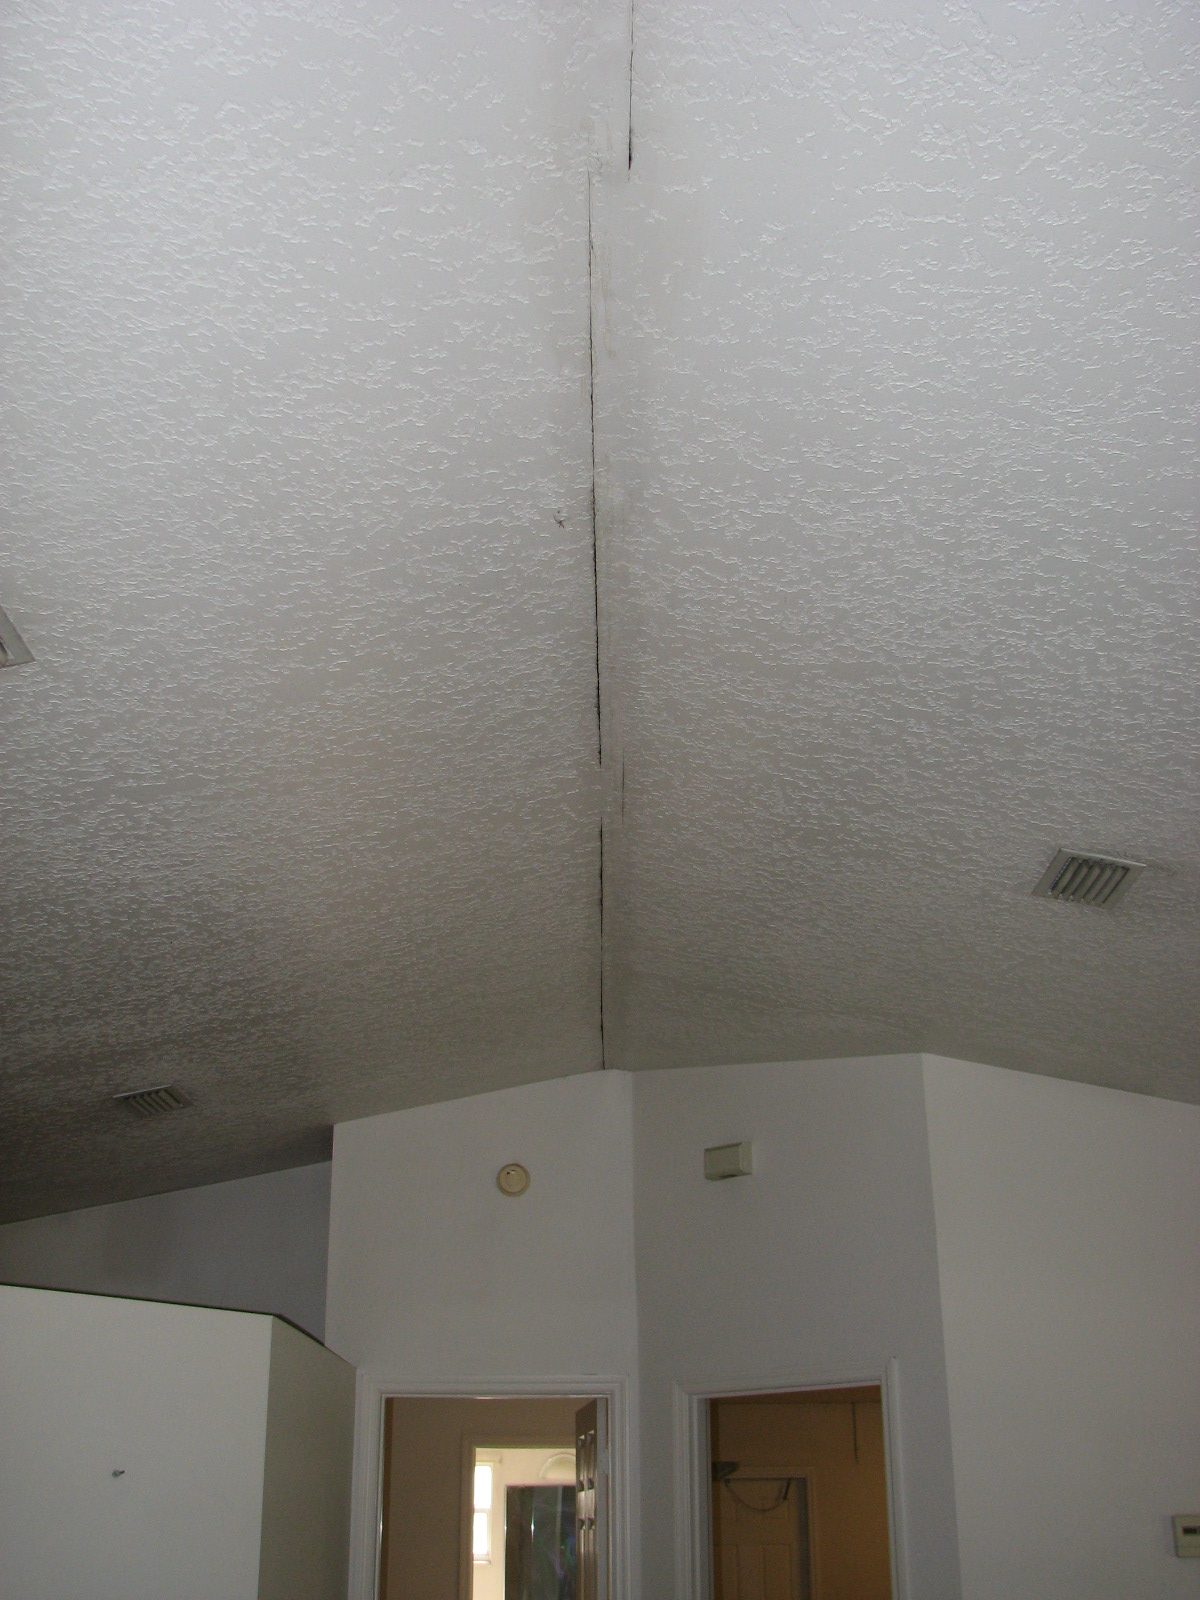 14 How To Spray Popcorn Ceiling Patch A